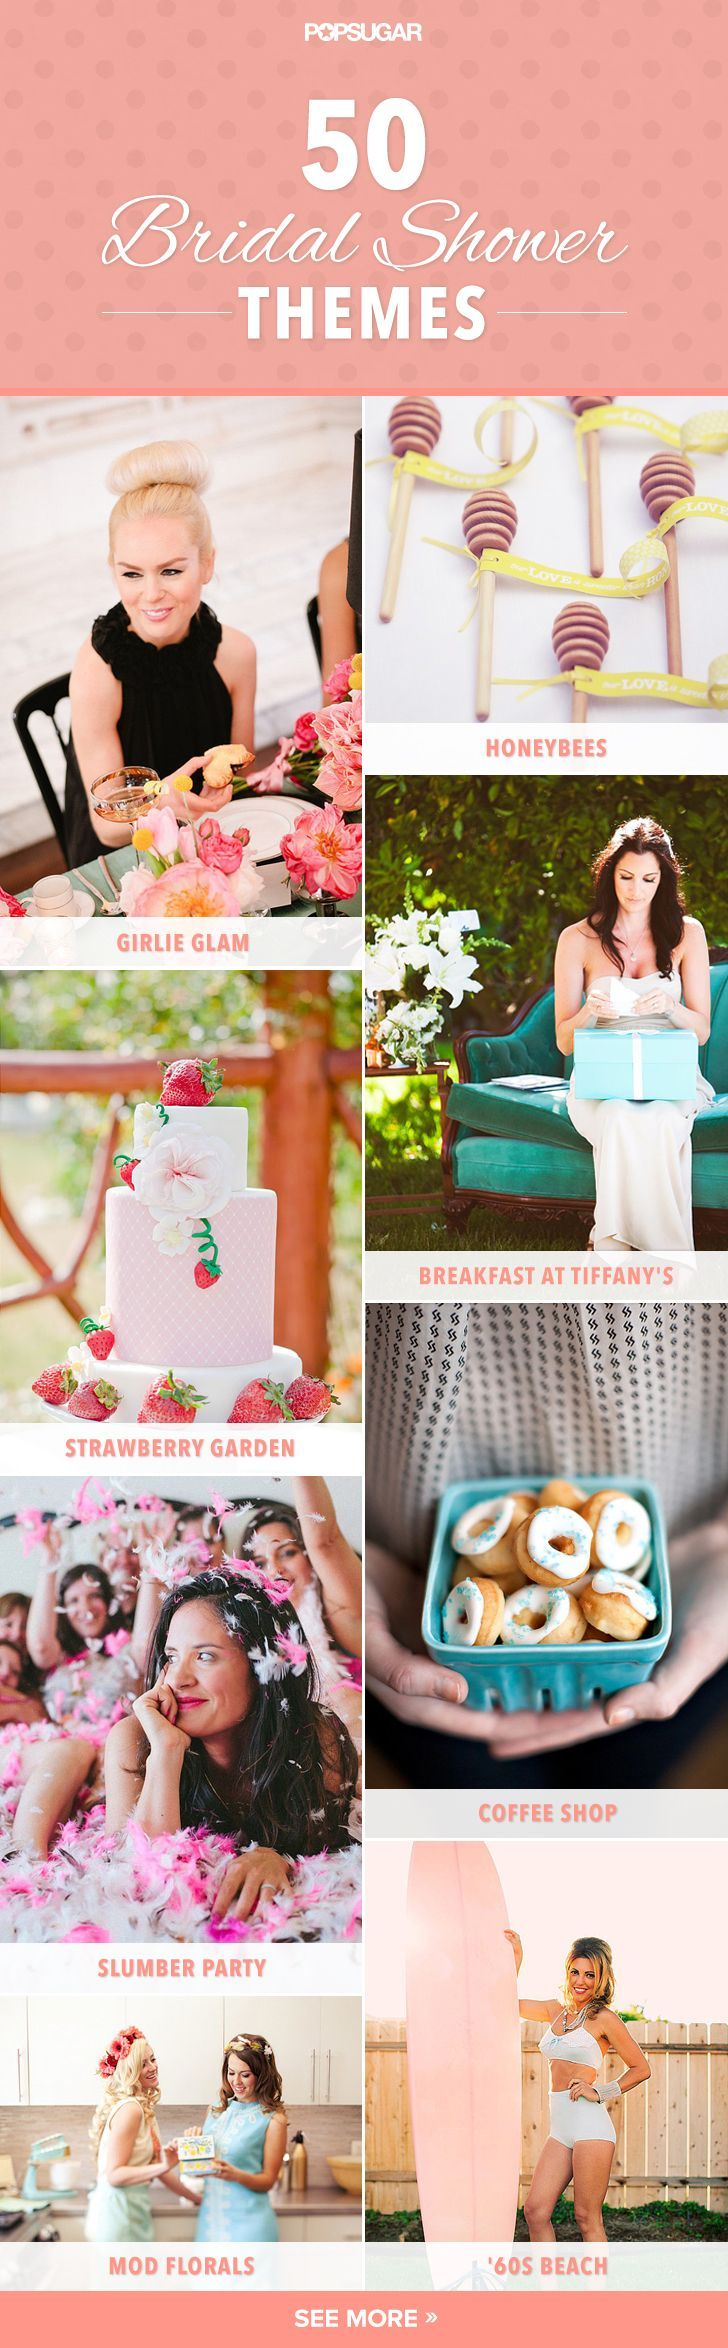 50 Bridal Shower Theme Ideas to try if you've run out of good ideas